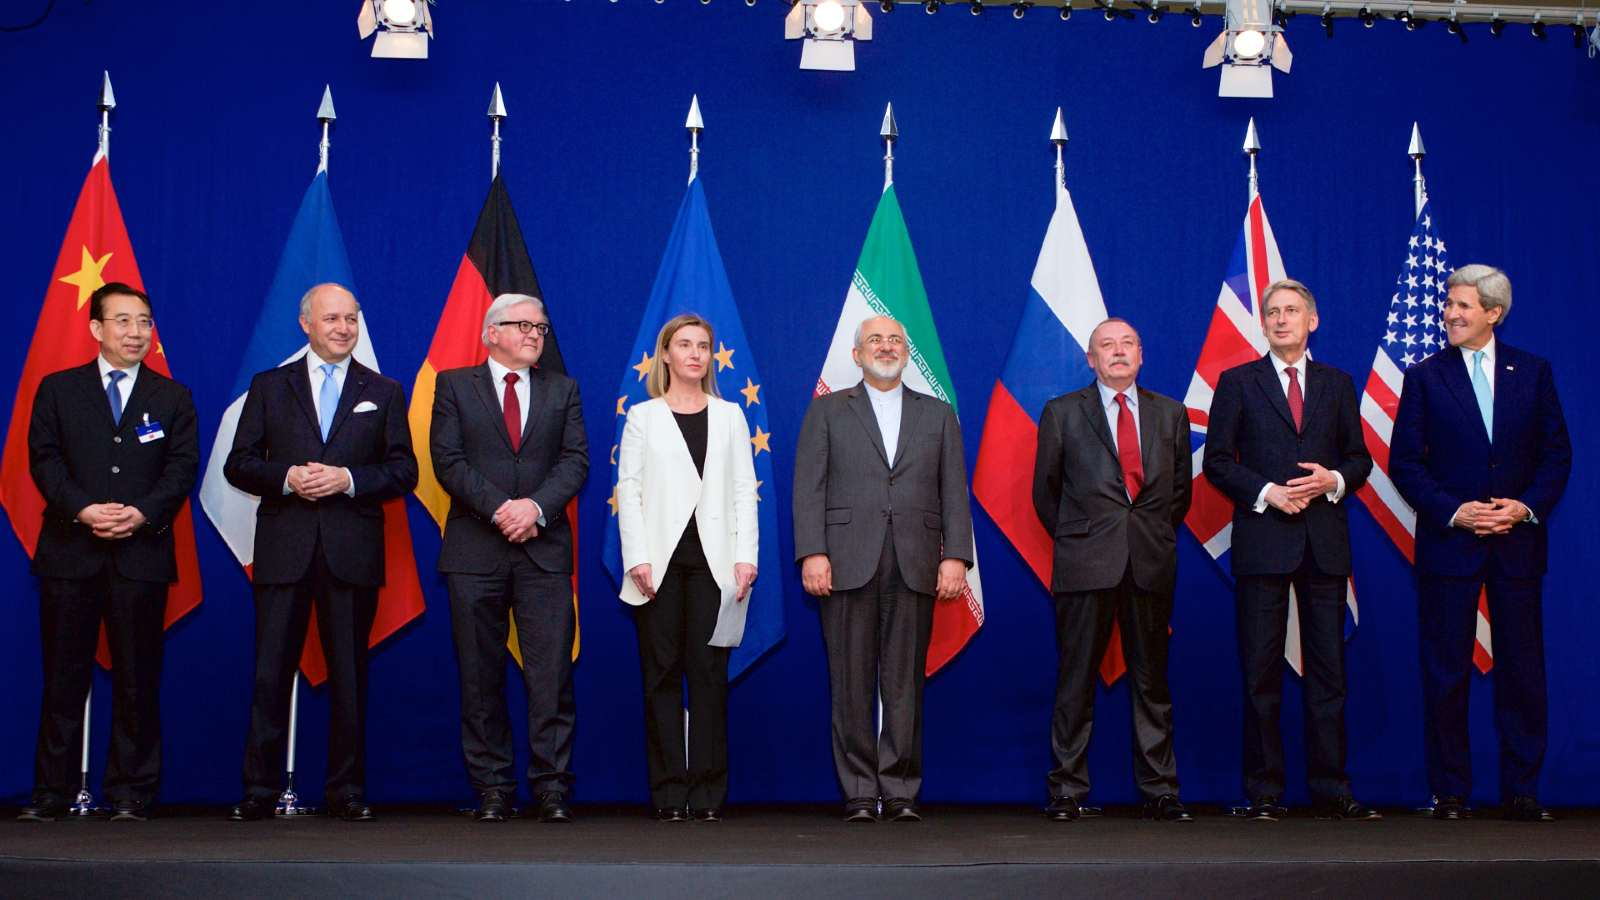 Photo: The ministers of foreign affairs and other officials from the P5+1 countries, the European Union and Iran while announcing the framework of a Comprehensive agreement on the Iranian nuclear programme. Credit: Wikimedia Commons